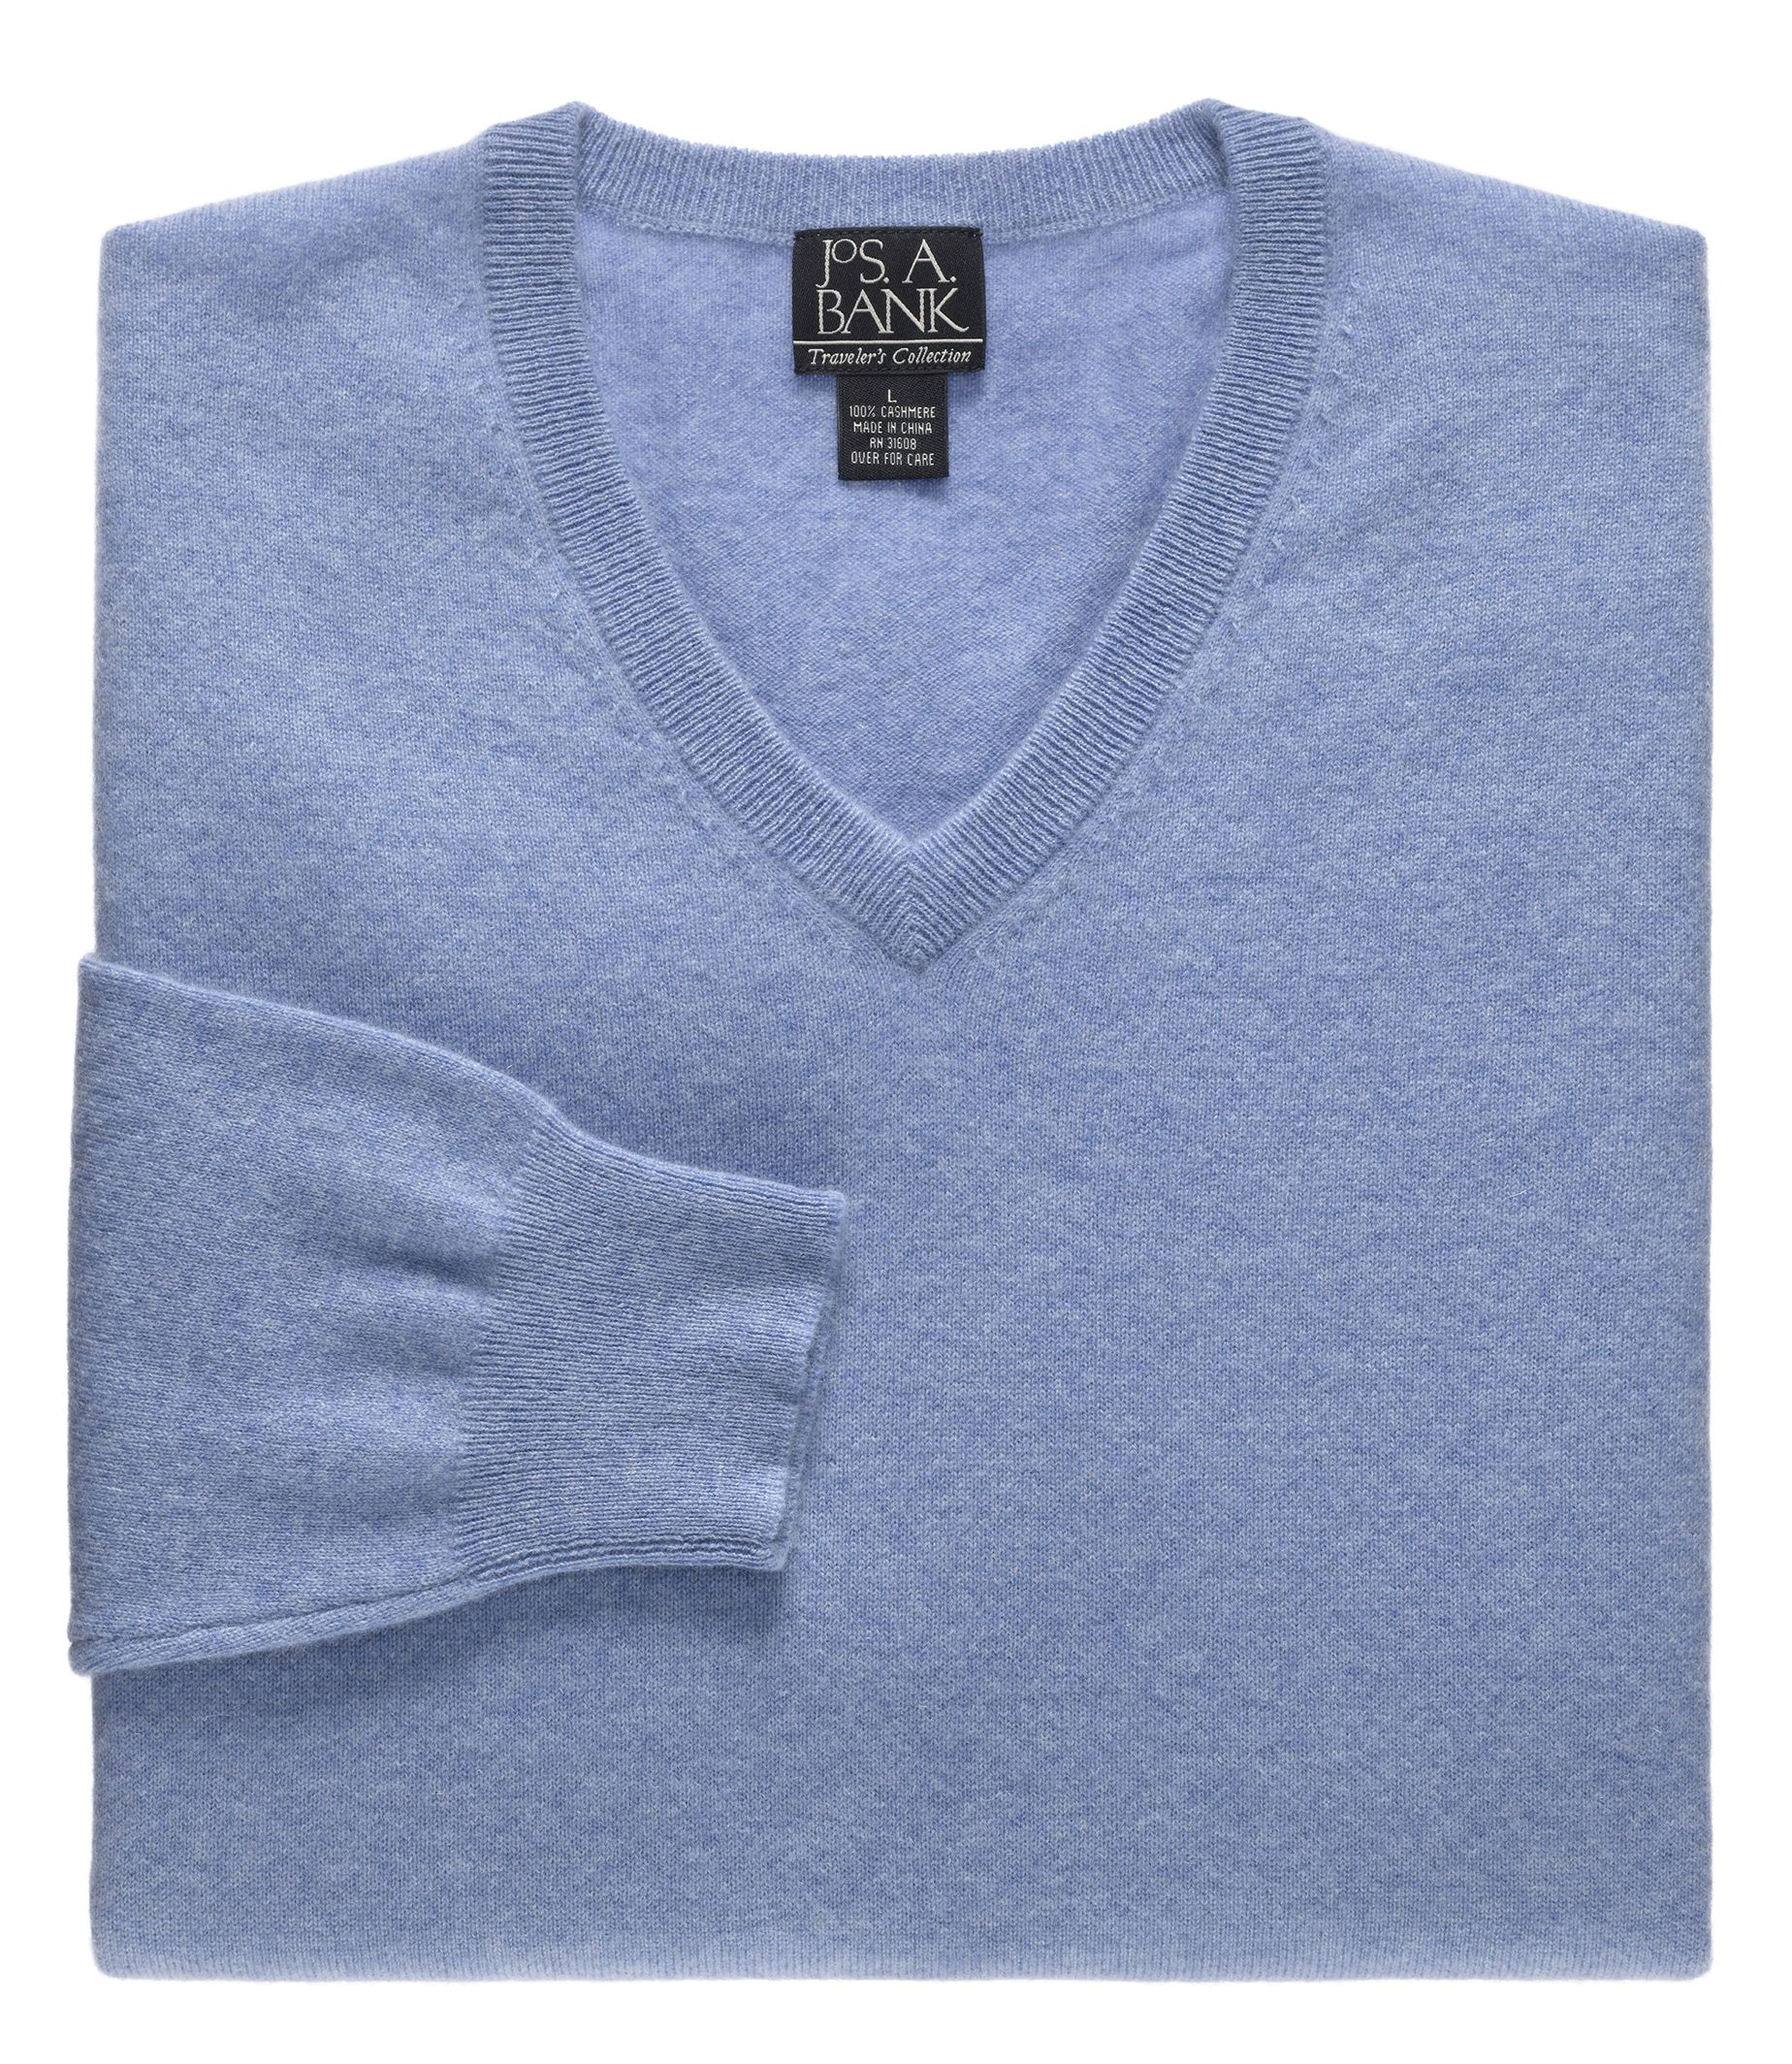 Cashmere sweater traveler collection cashmere v-neck sweater - traveler sweaters | jos a bank OFJOVTY